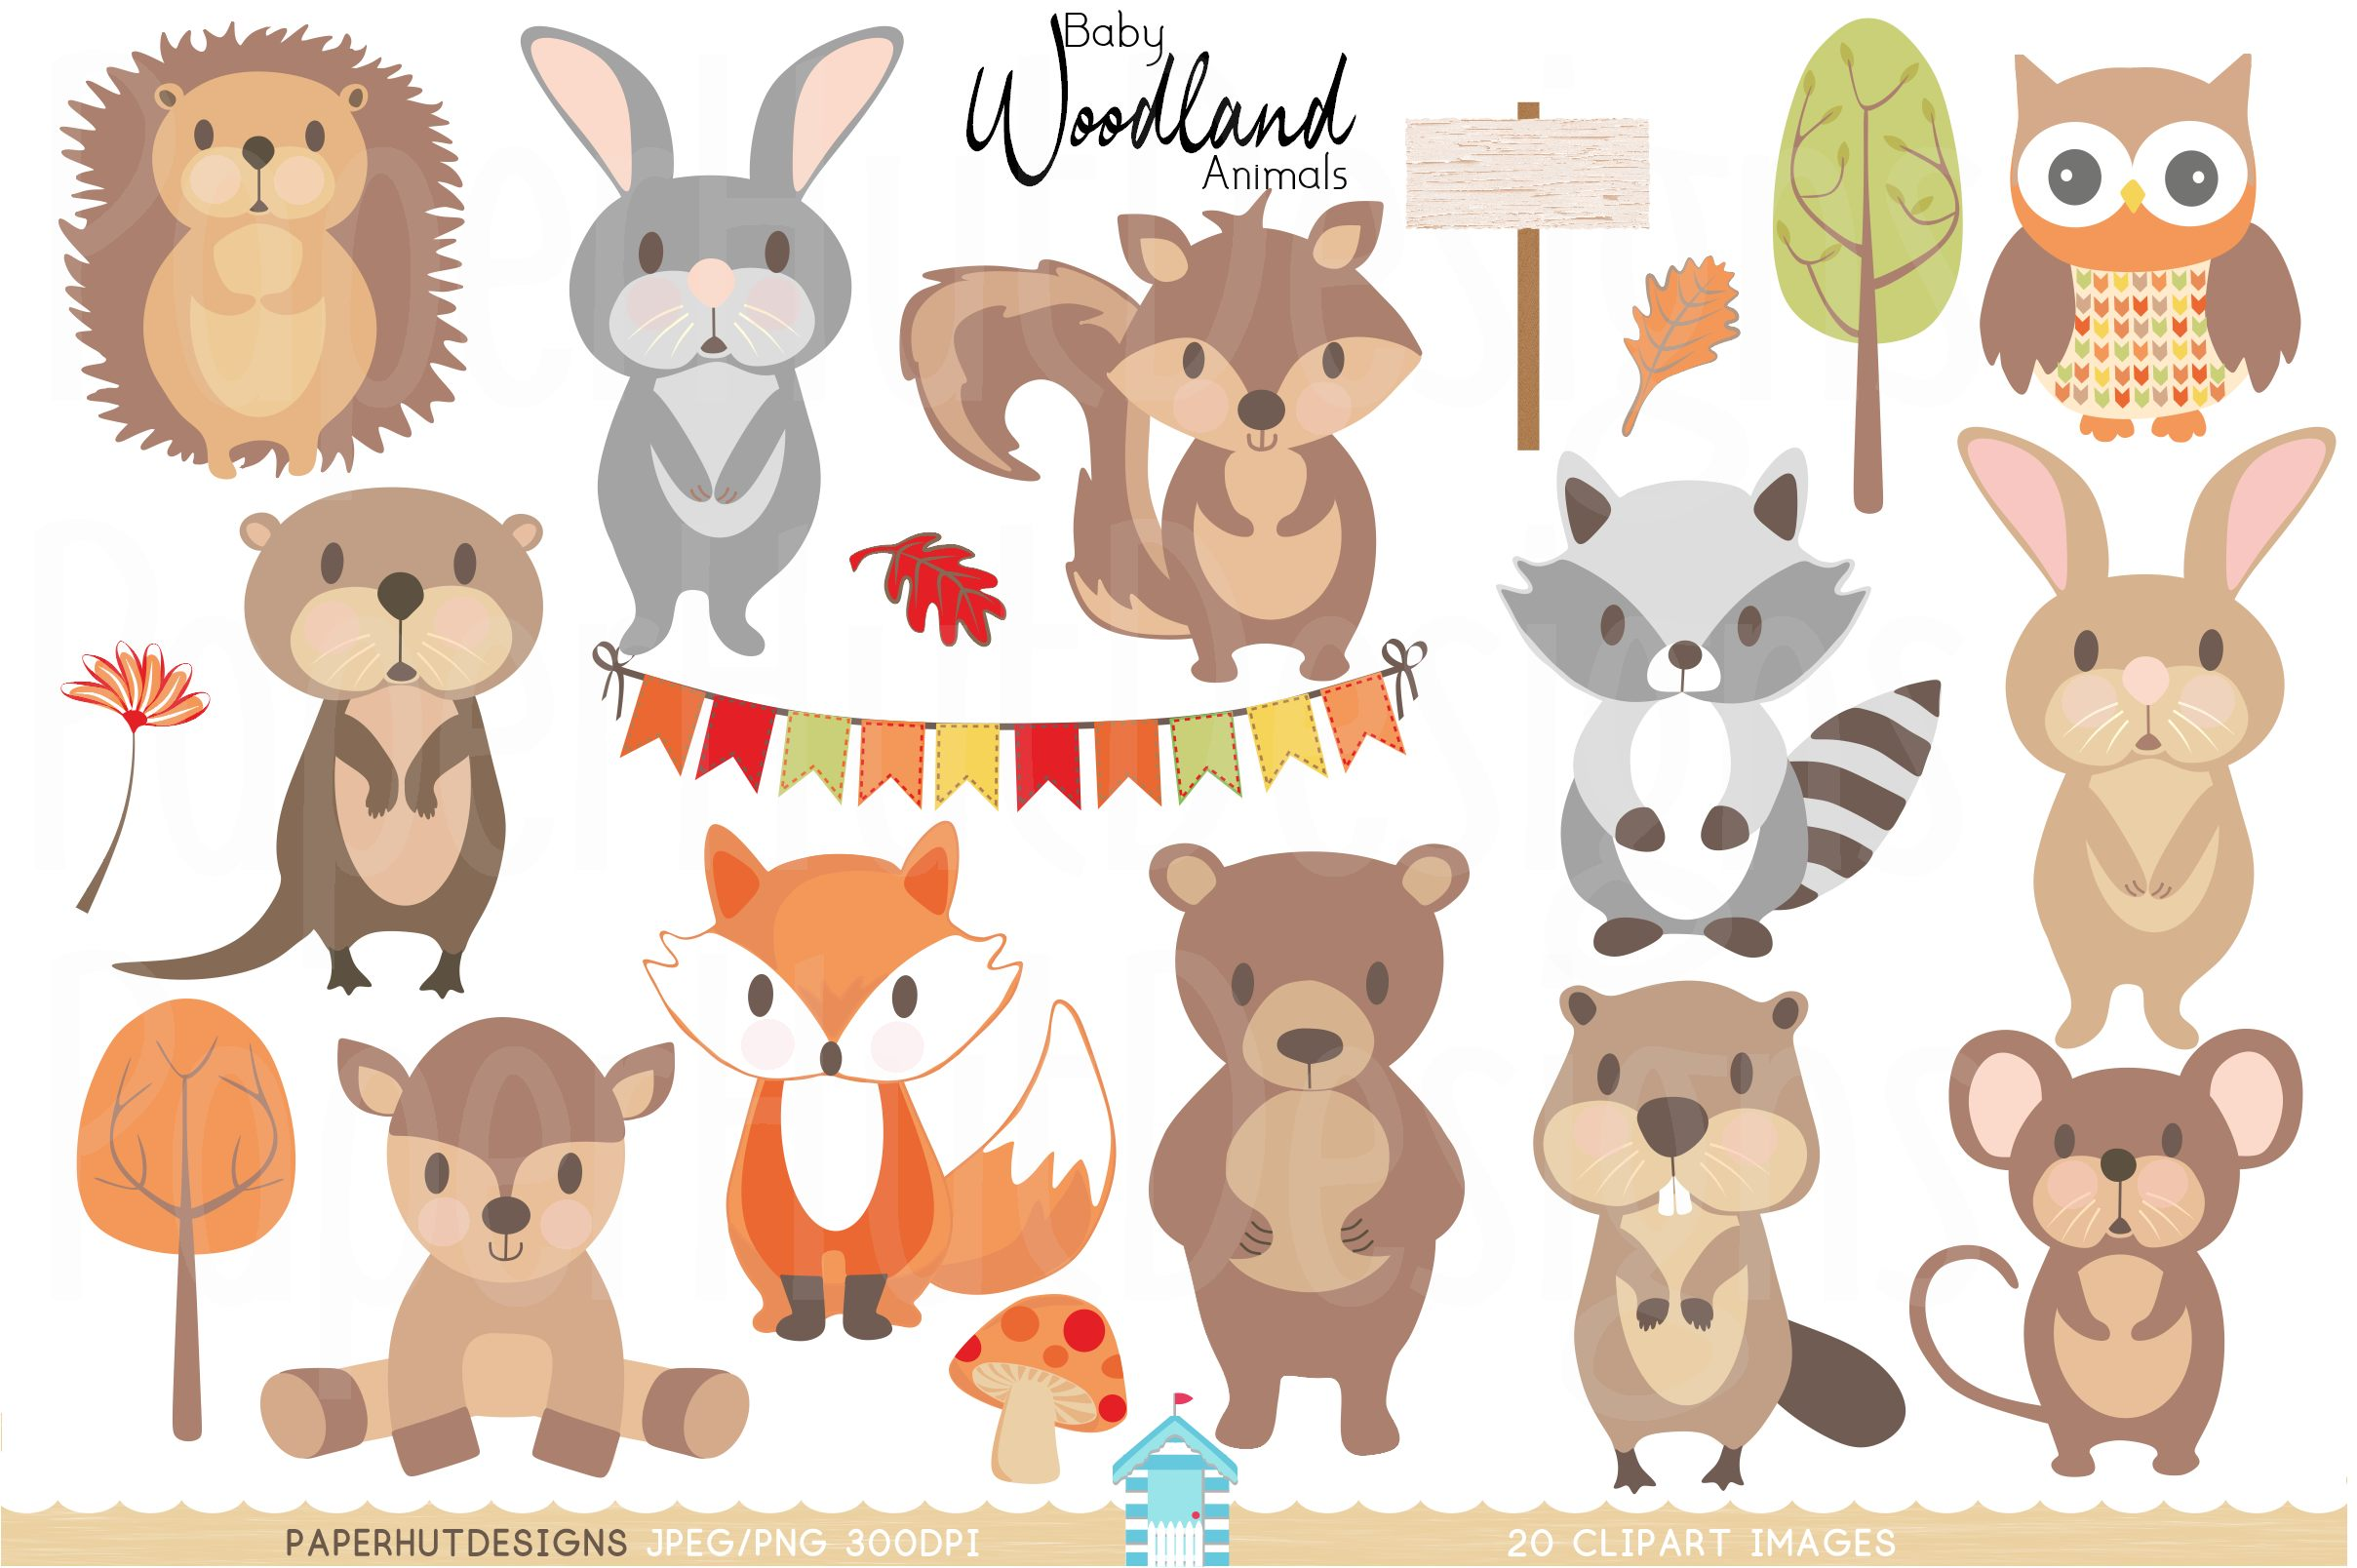 Baby Woodland Animals Clipart.